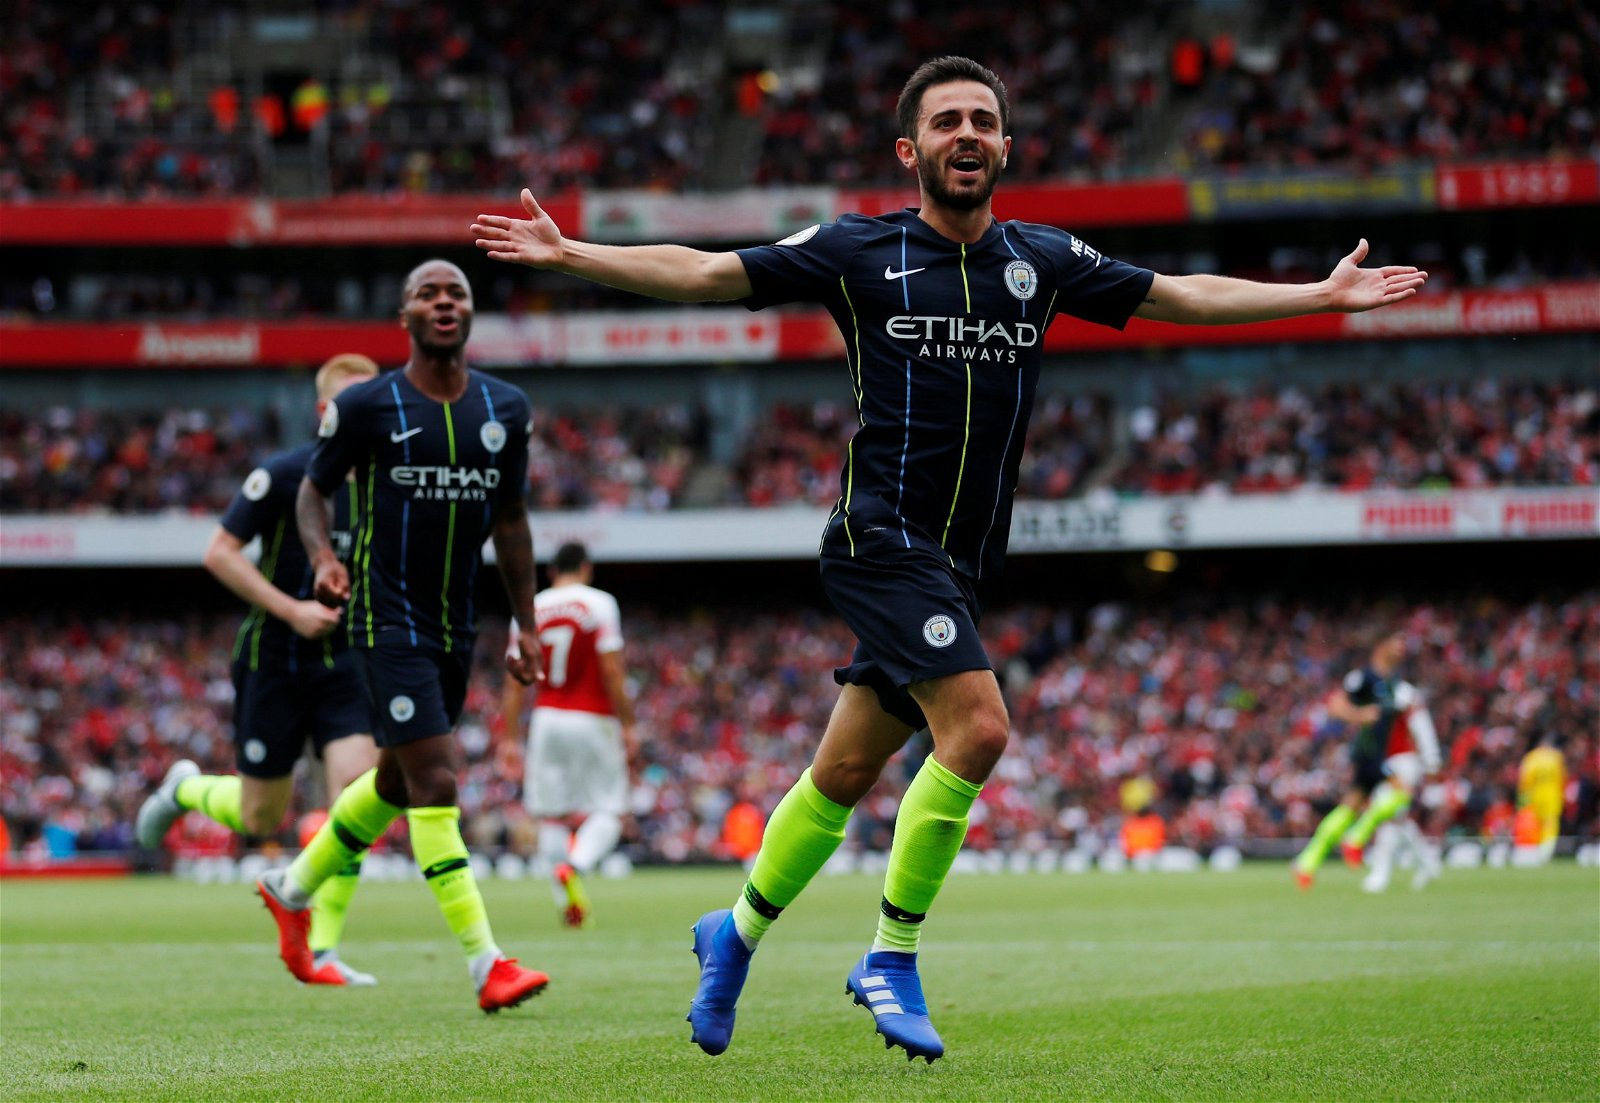 Manchester City - Bernardo Silva scores vs Arsenal